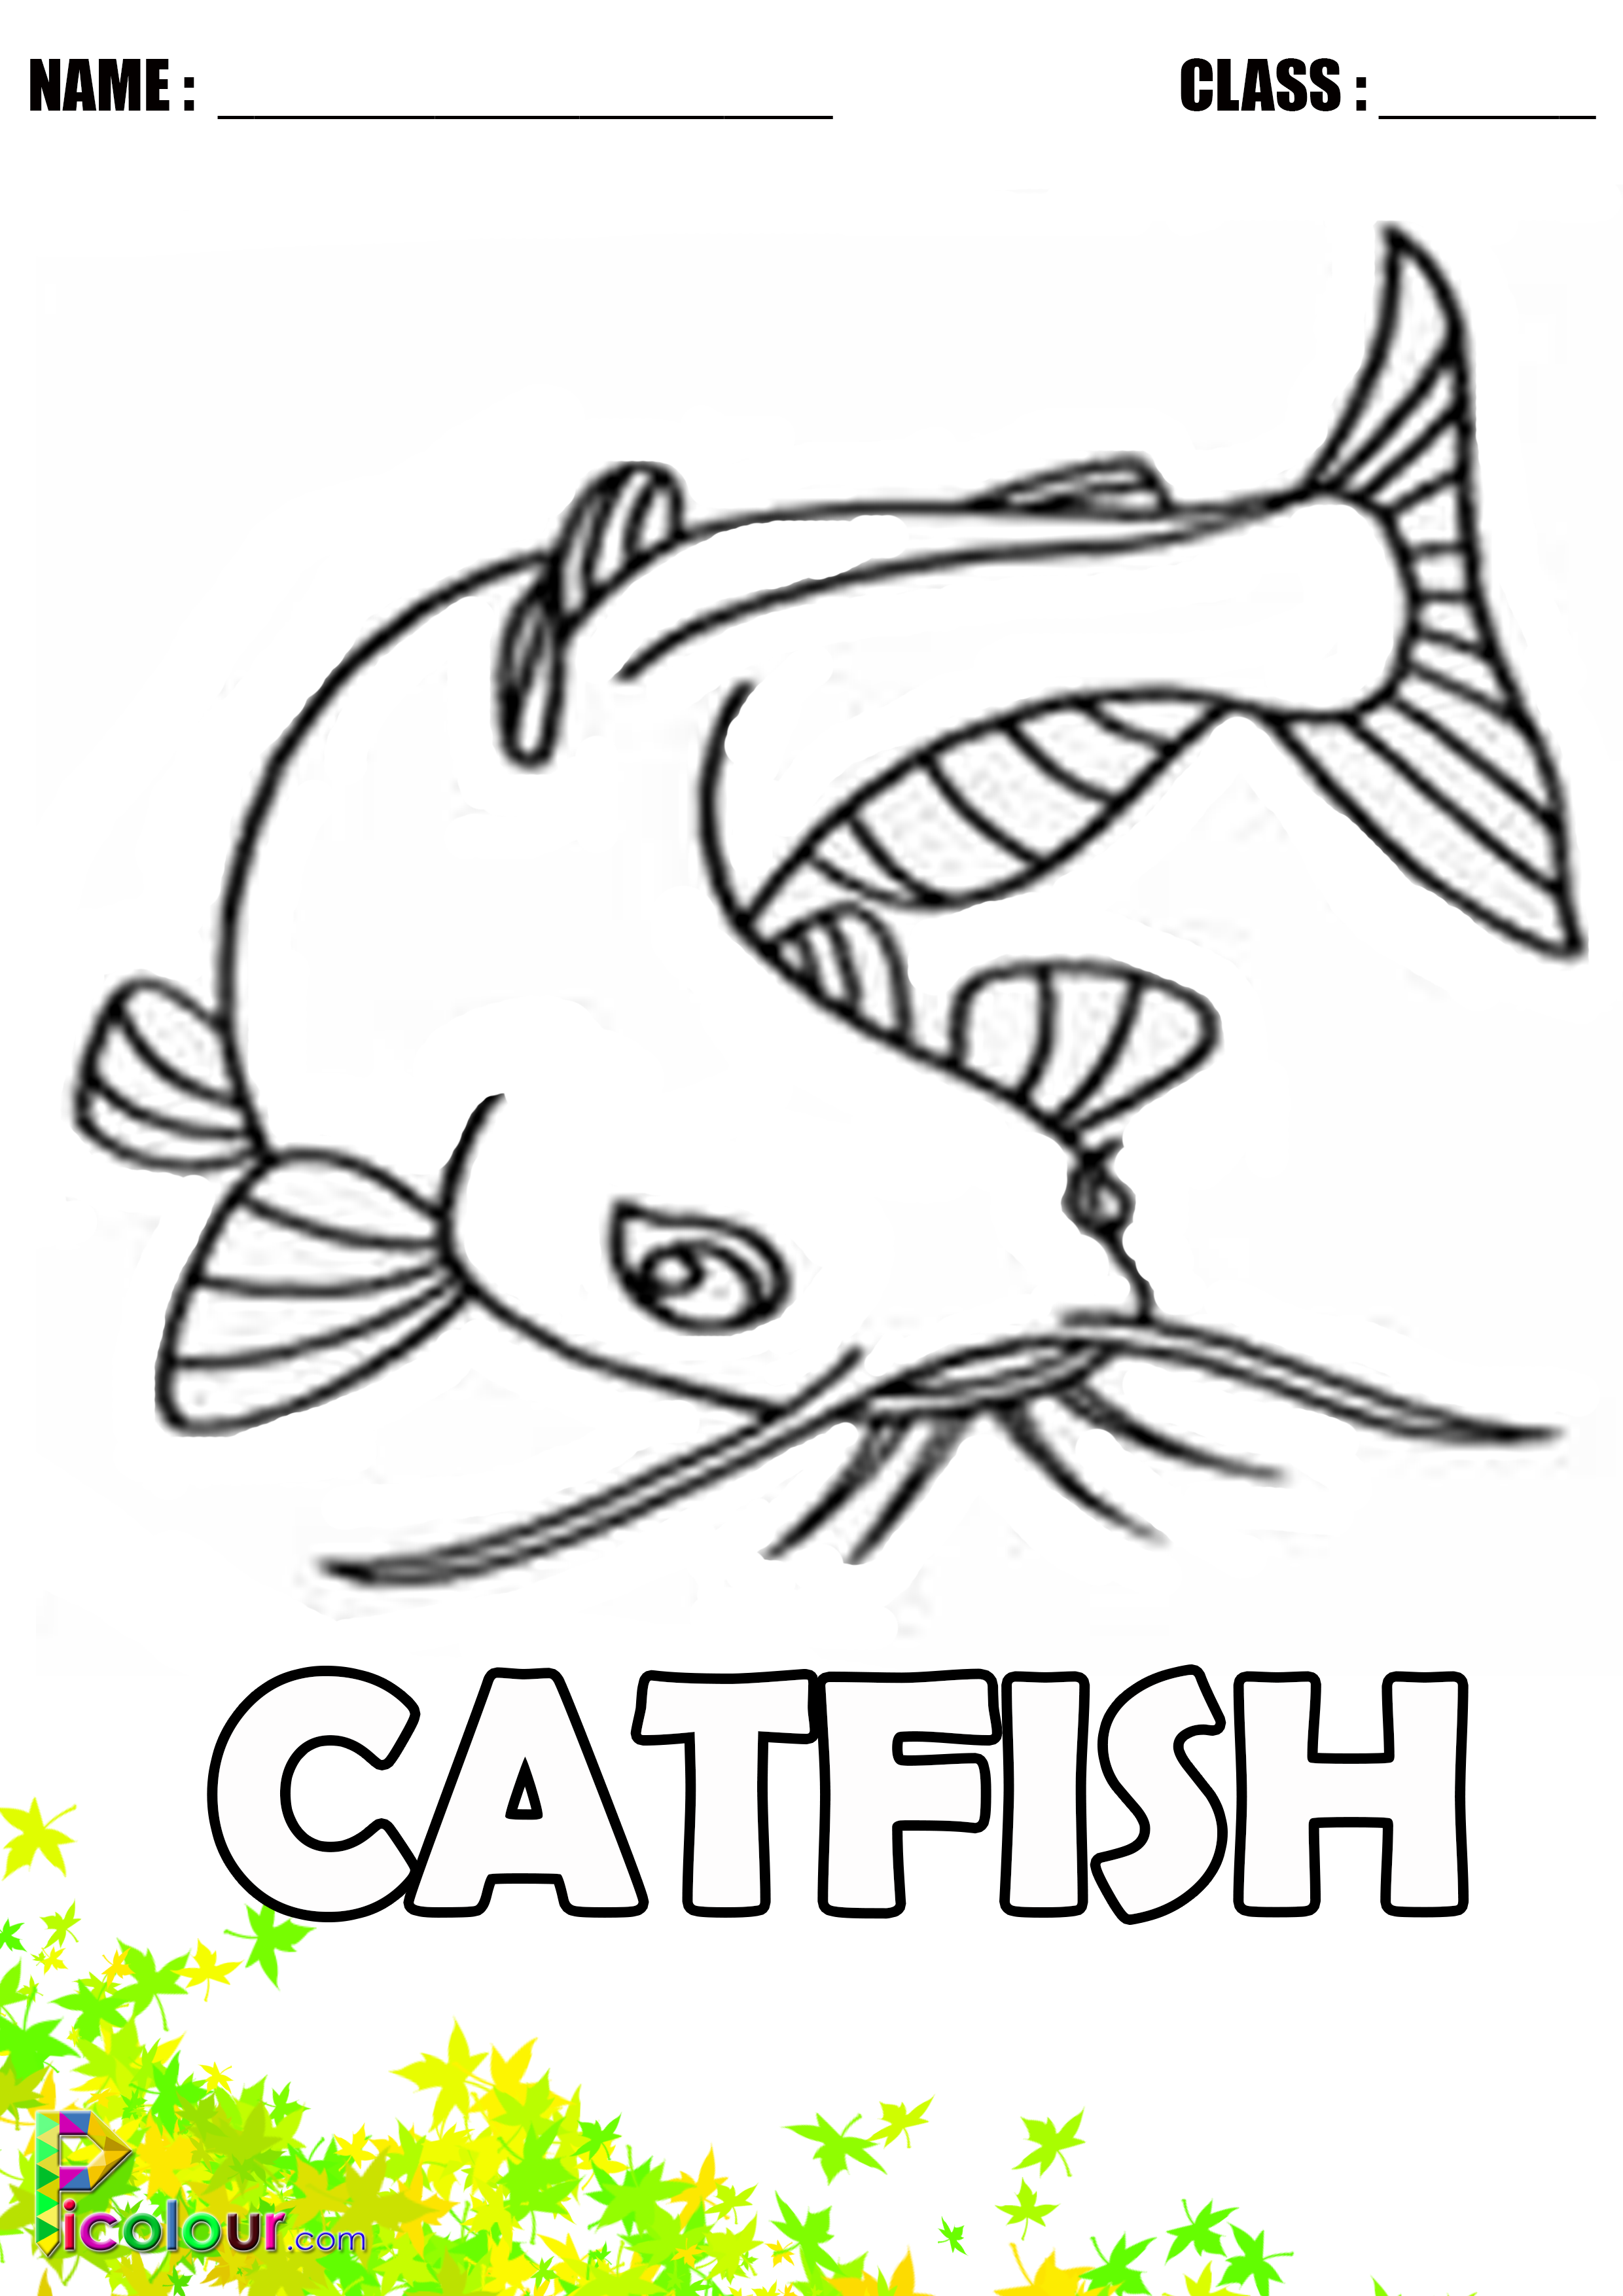 Catfish Colouring Pages For Kids Printable Colouring Pages Coloring Pages For Kids Printables Kids